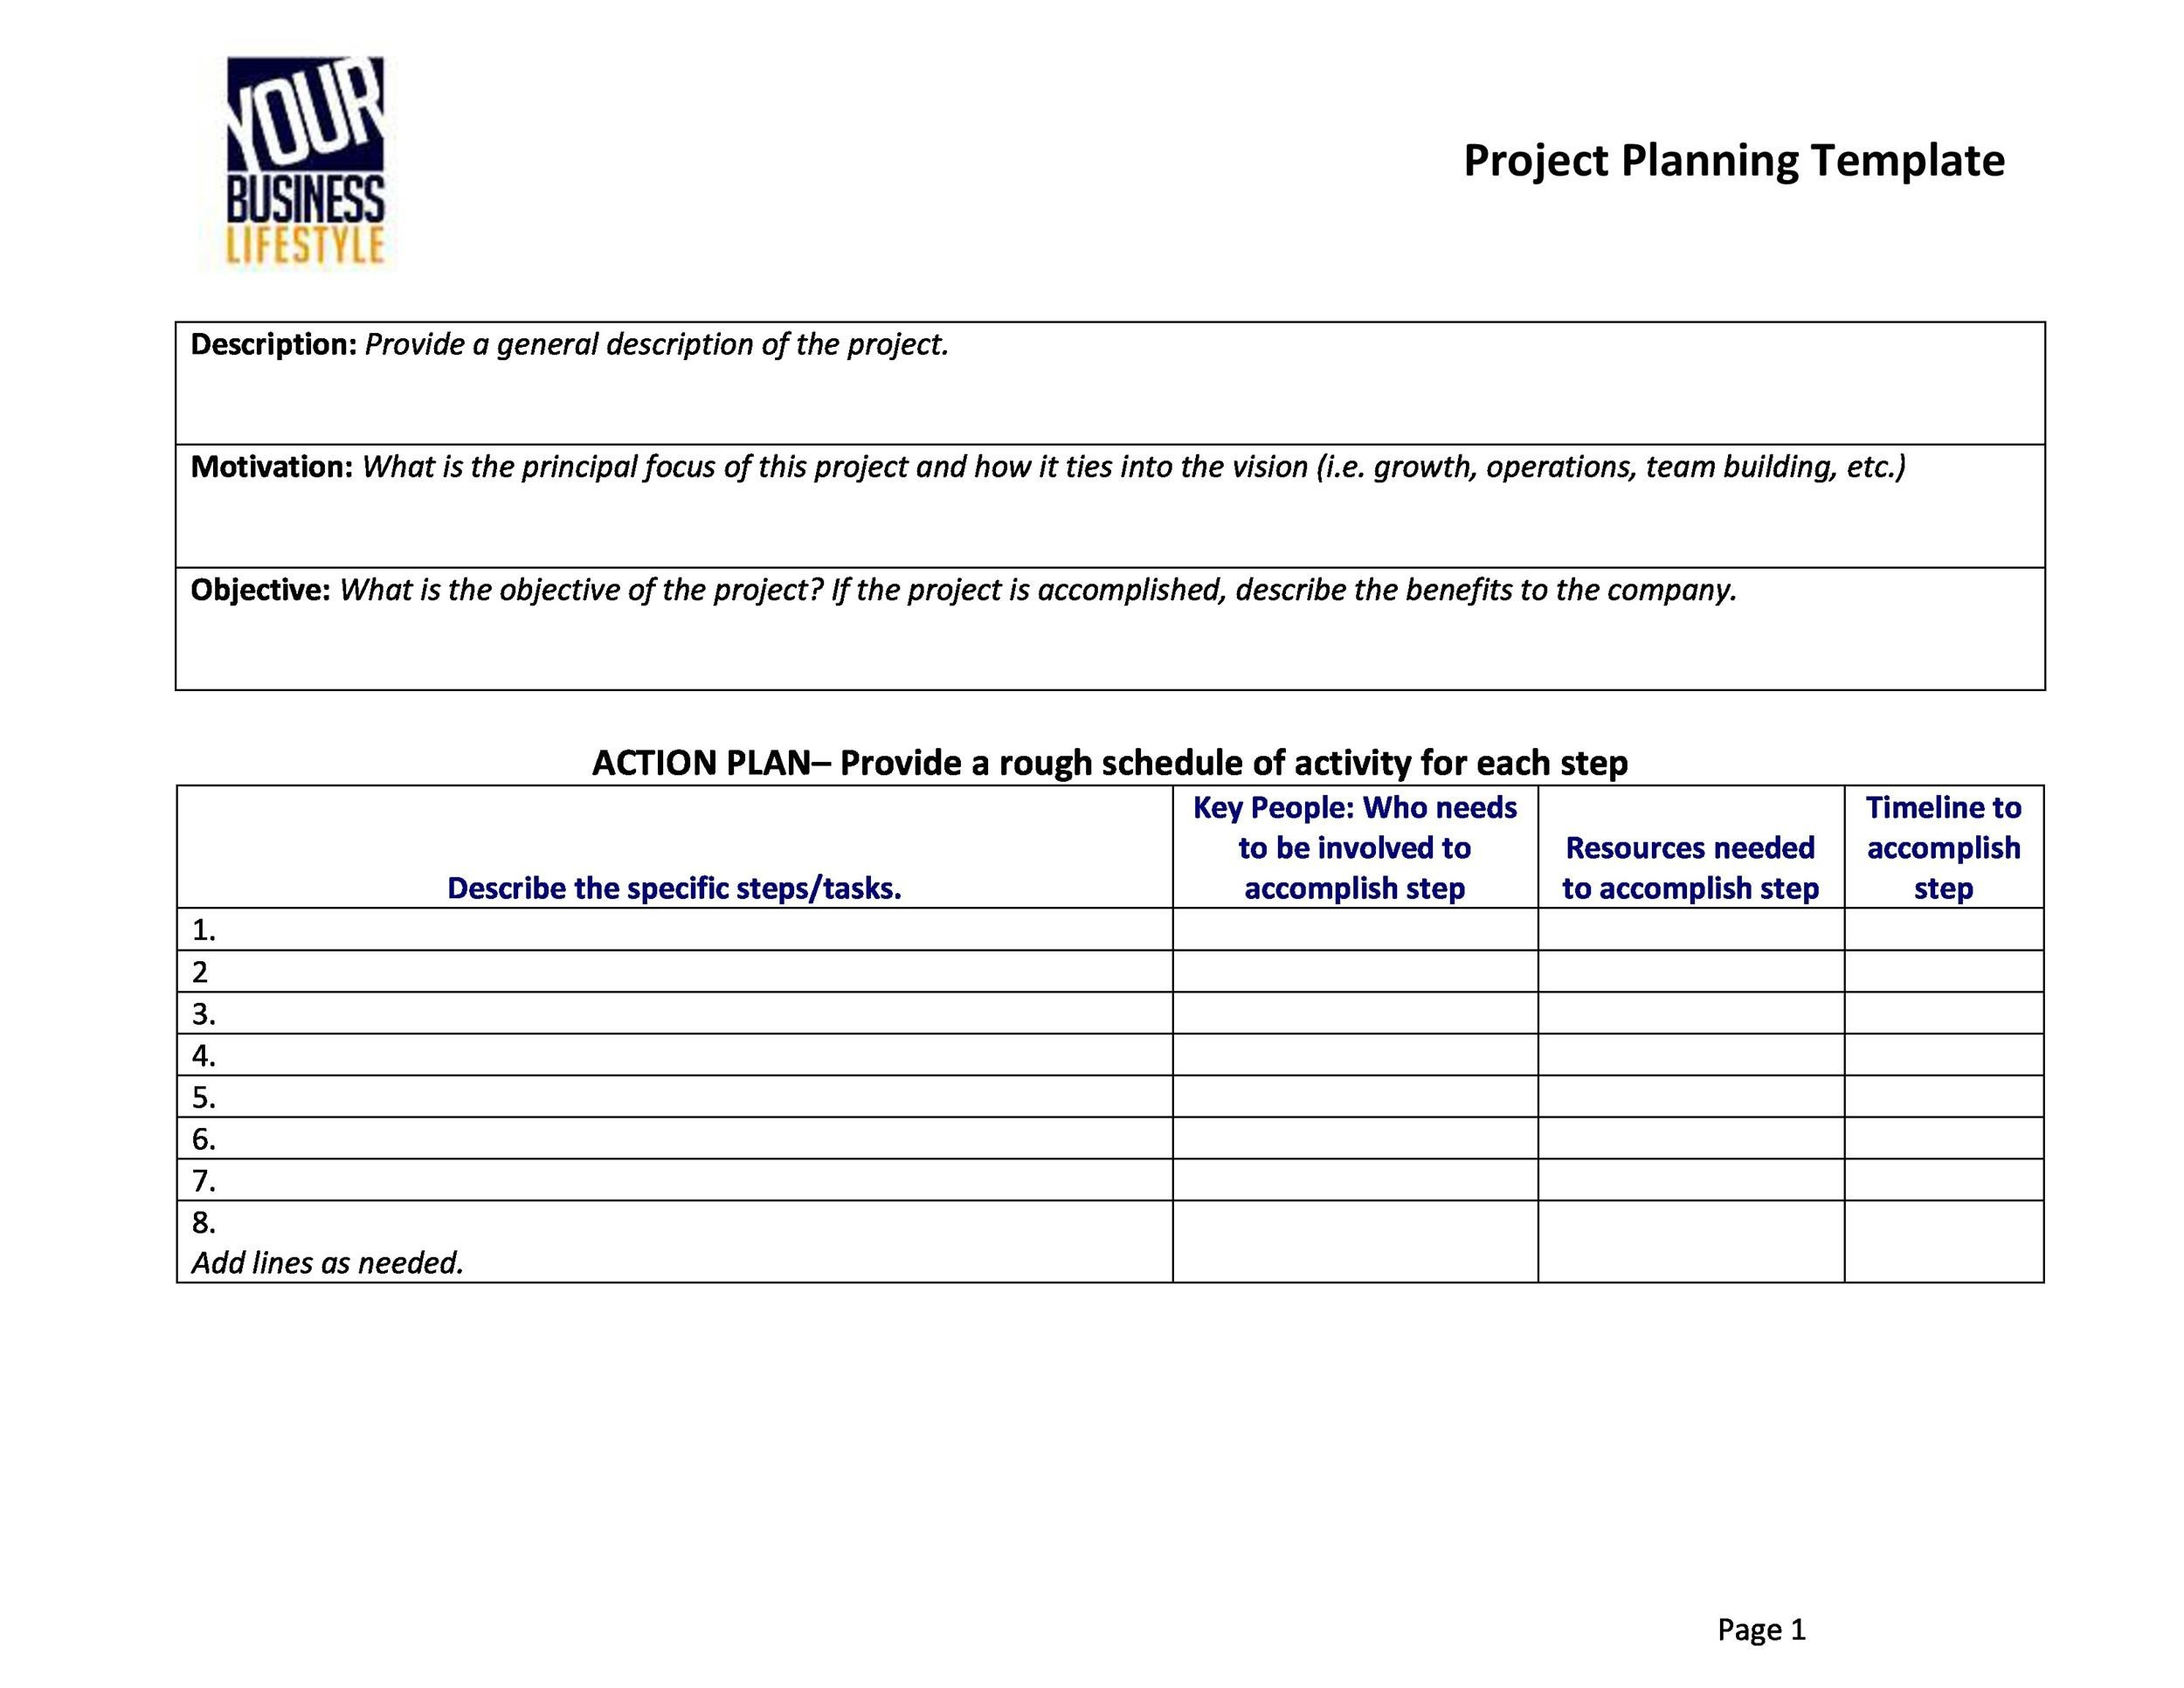 48 Professional Project Plan Templates [Excel, Word, Pdf